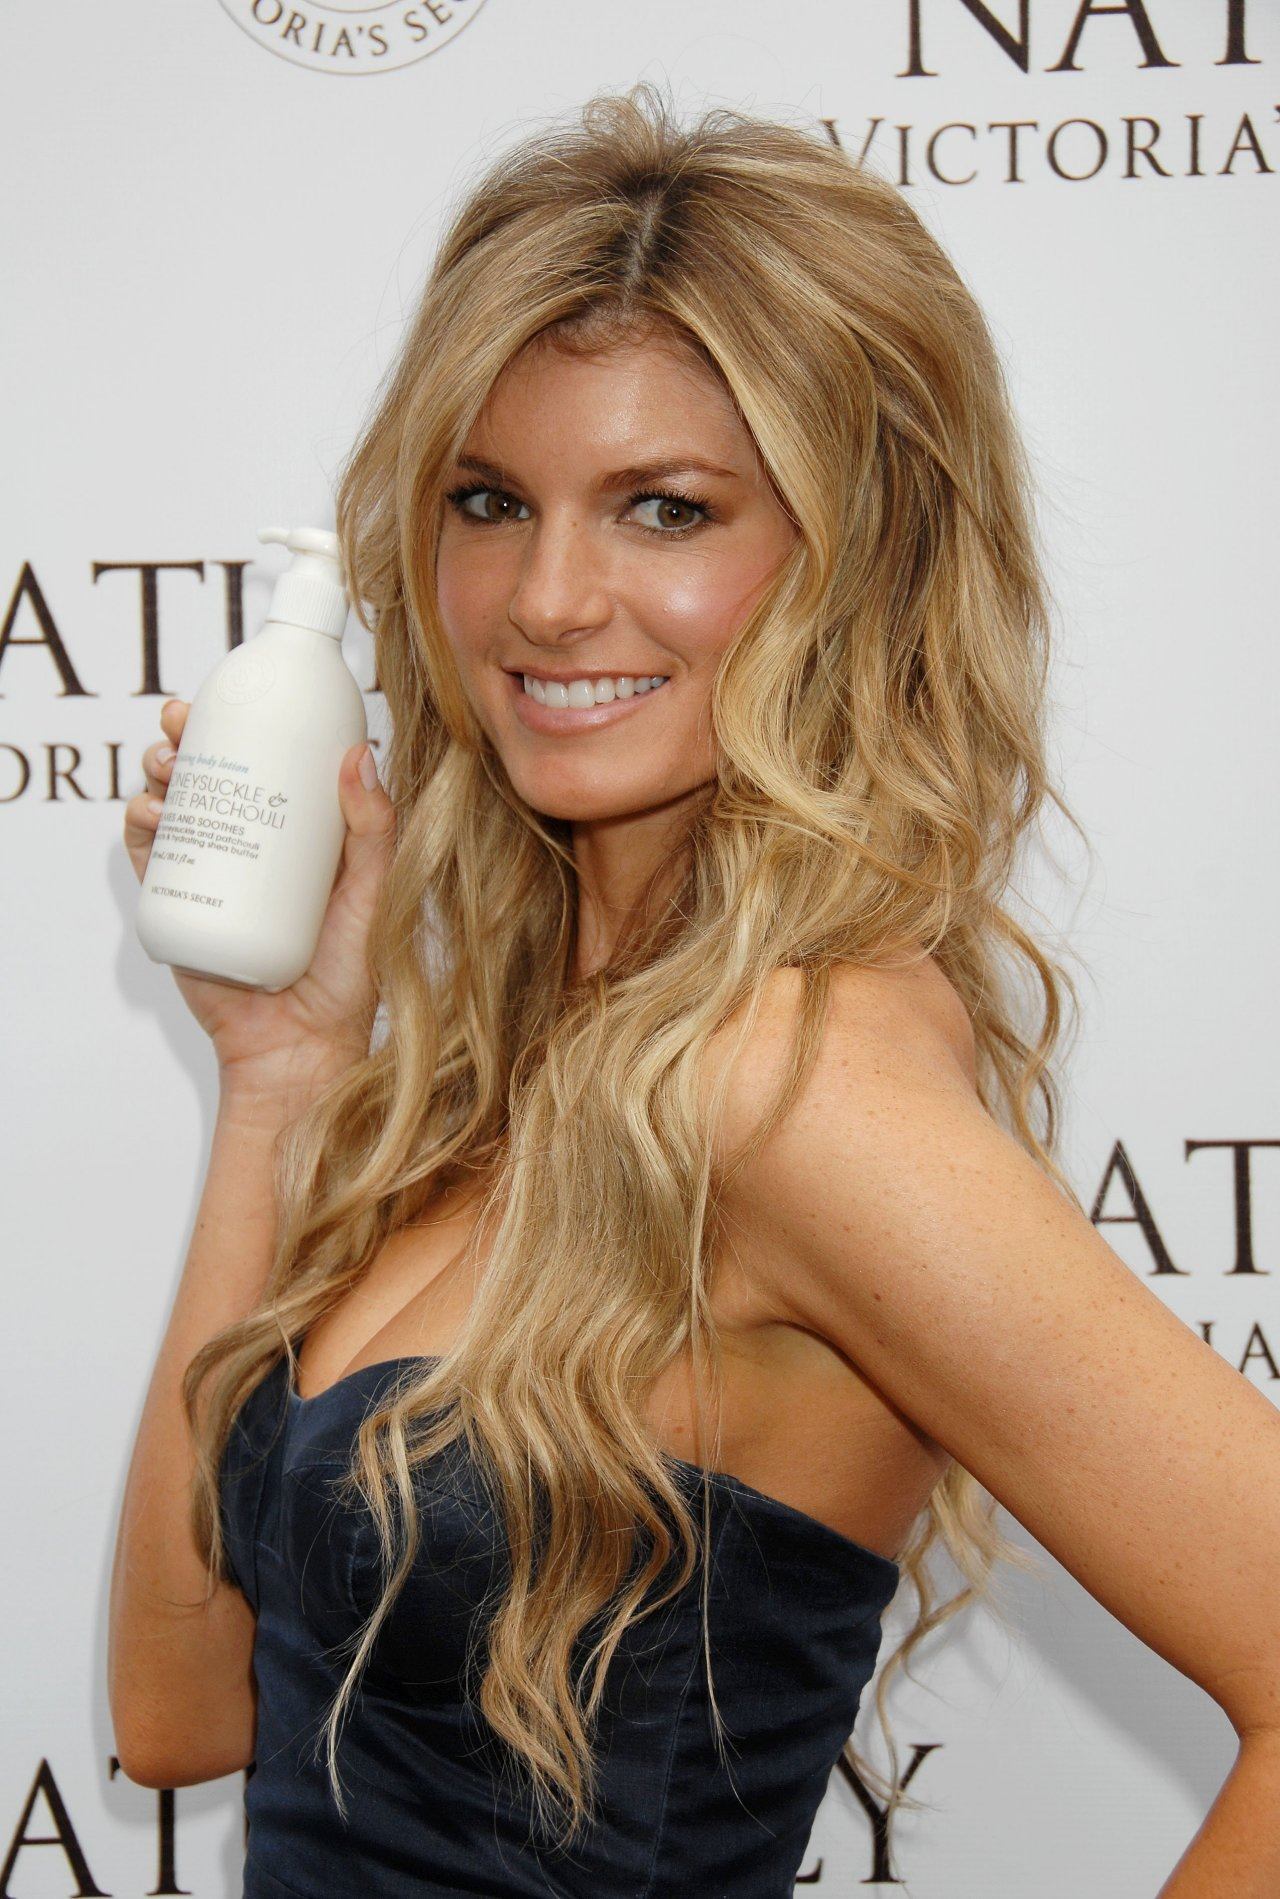 Marisa Miller Wallpapers Images Of Celebrity Gossip